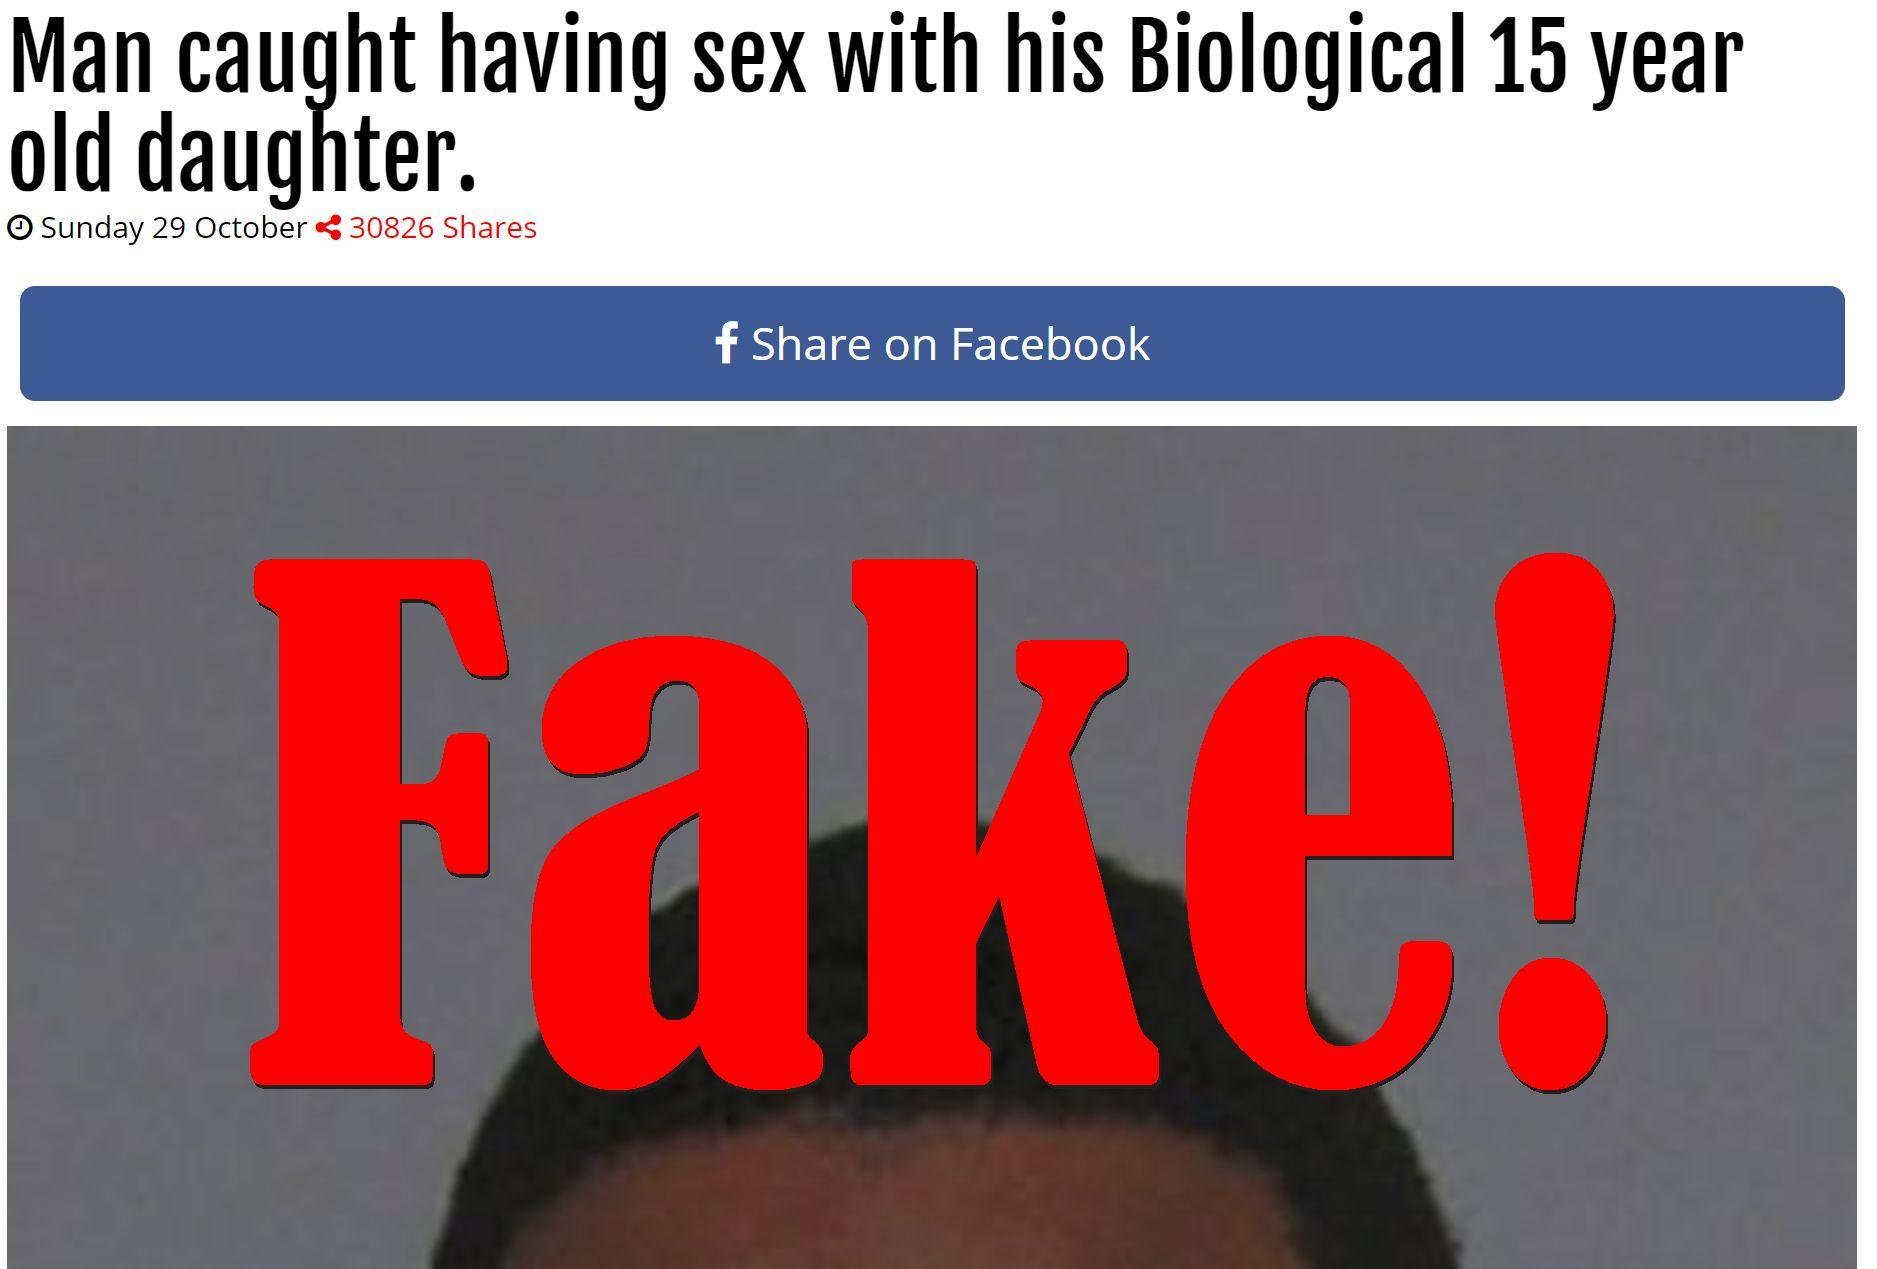 Fake News: Man NOT Caught Having Sex With Biological 15 Year Old Daughter